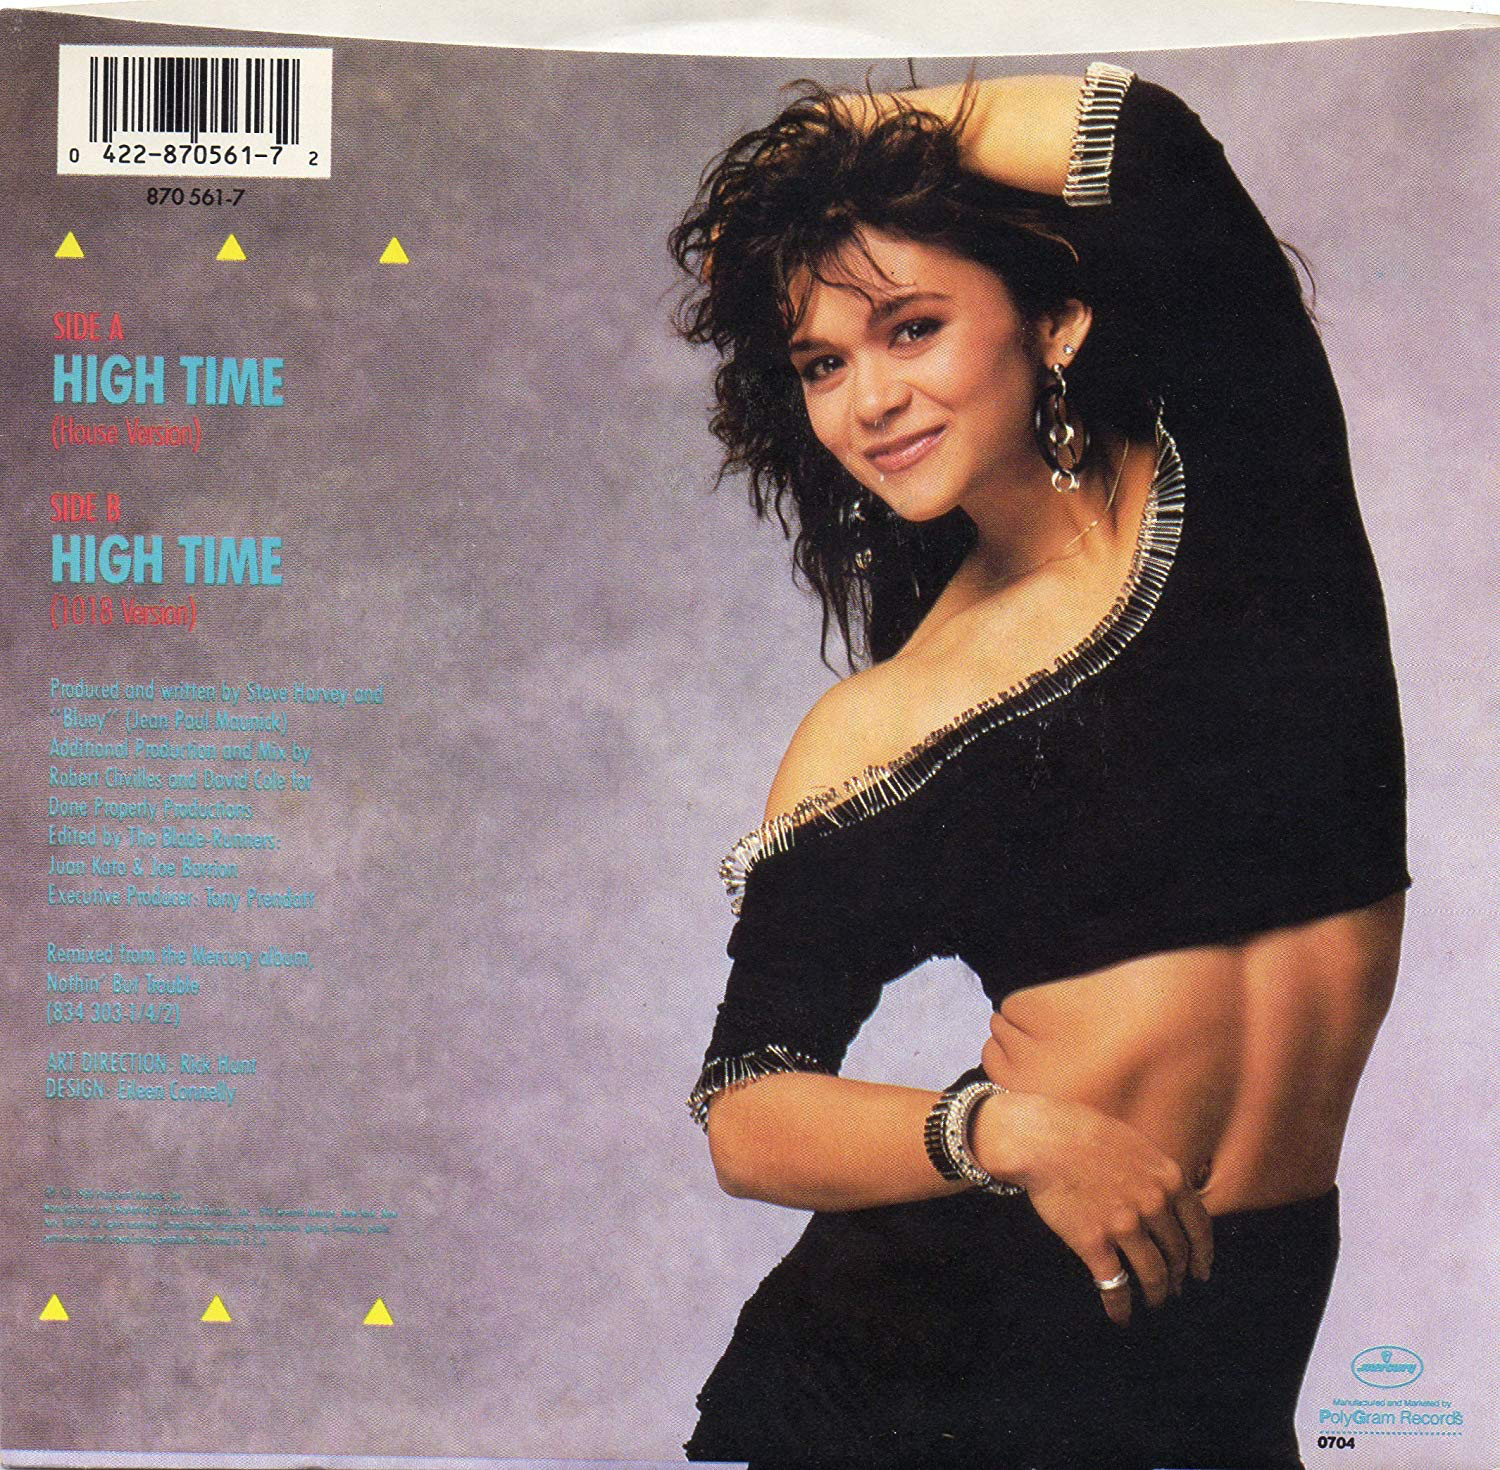 Nia Peeples - High Time - the follow up single to TROUBLE on Pal